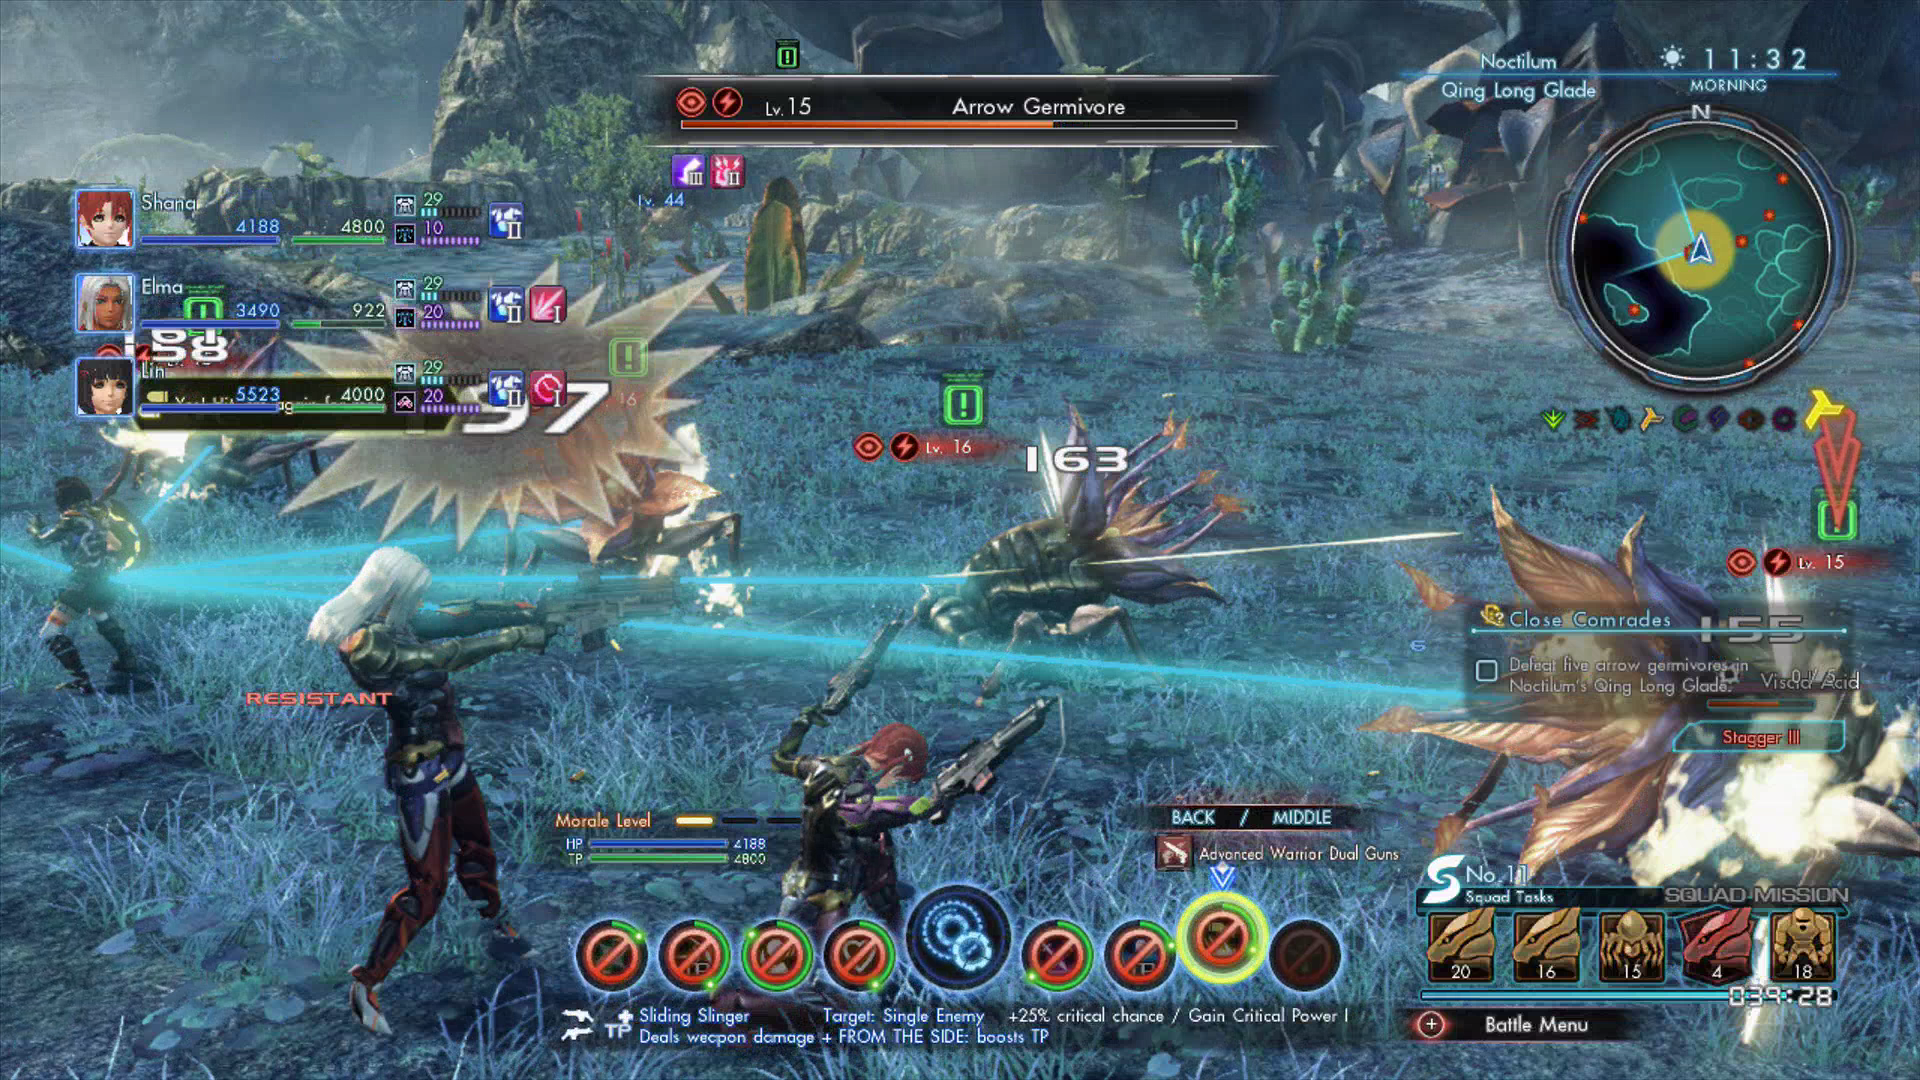 Xenoblade chronicles x review a mediocre jrpg in a aaa wrapper xenoblade chronicles x gumiabroncs Choice Image